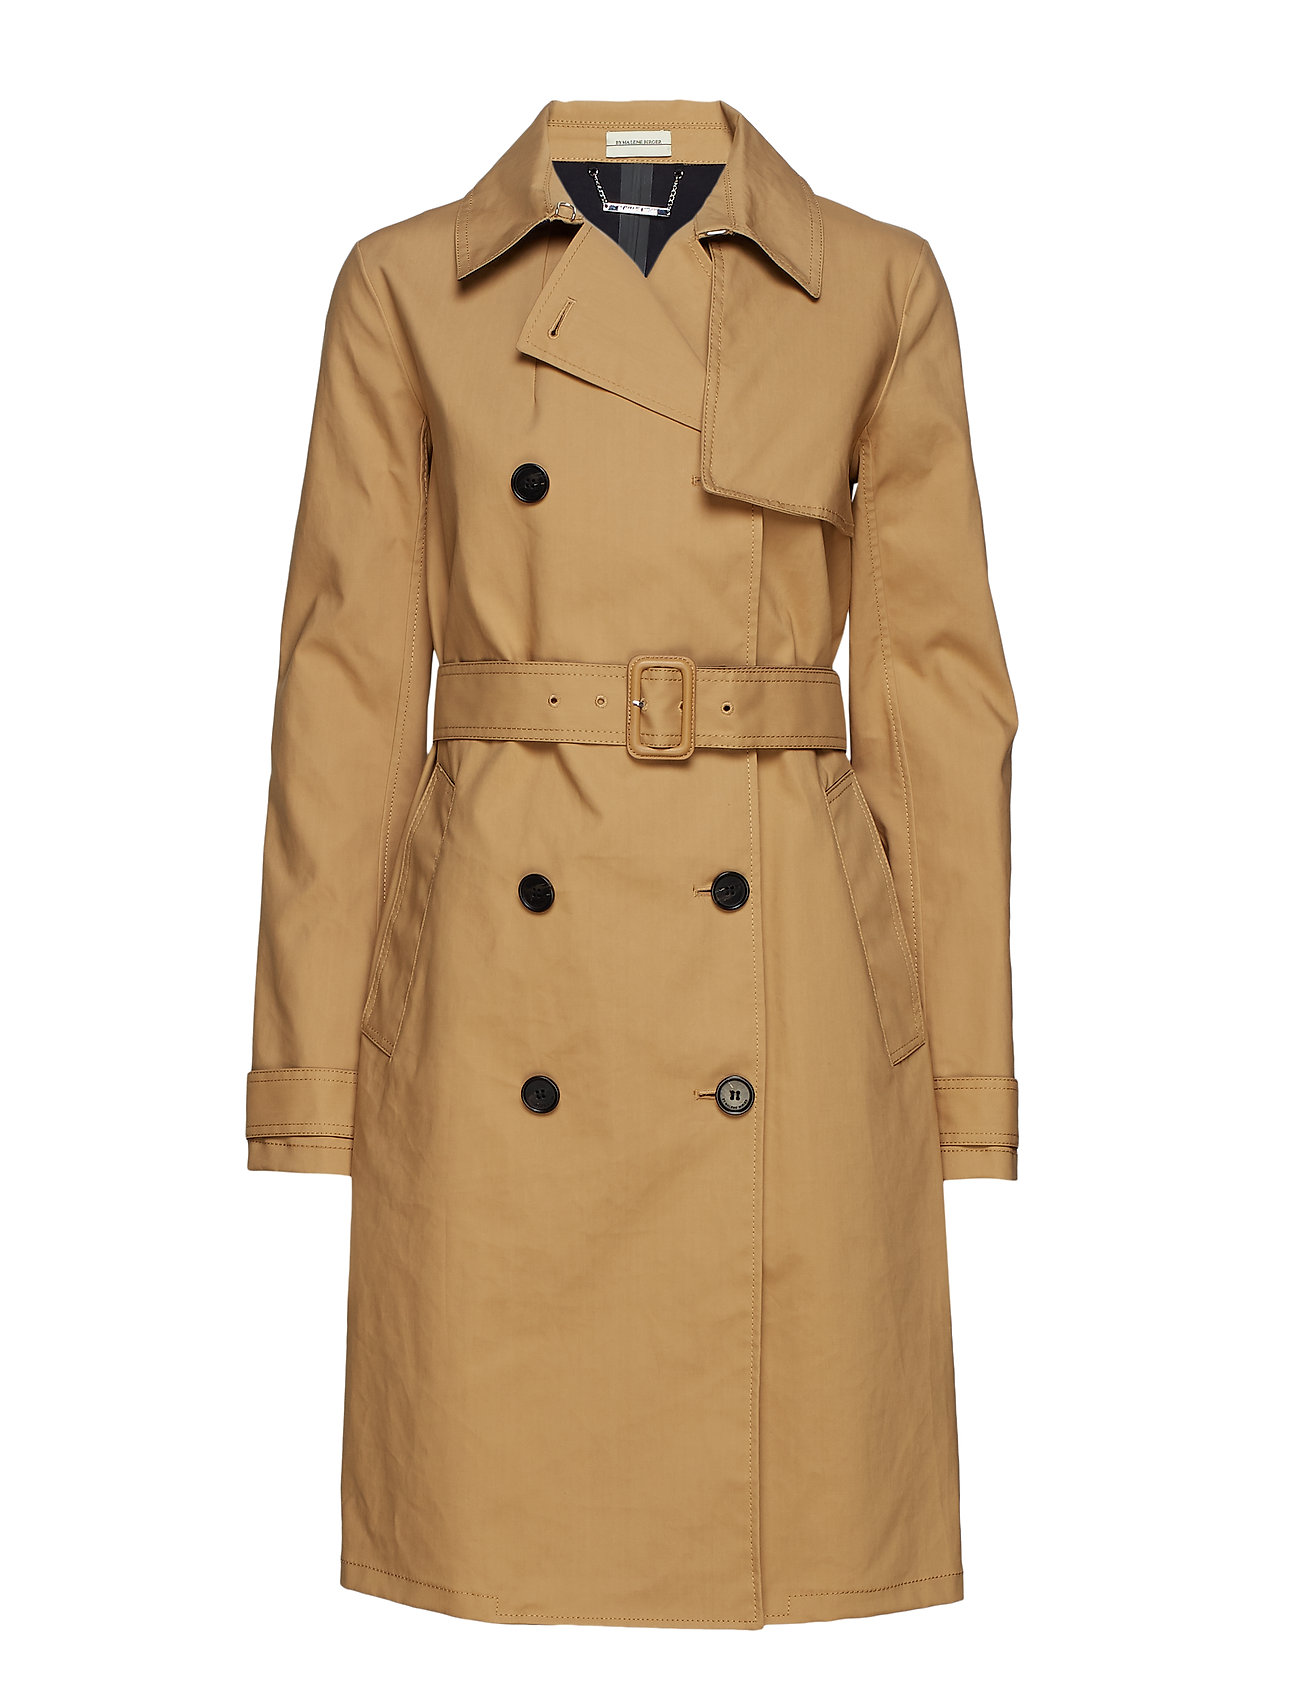 5f4abff368a LOUNGE By Malene Birger Rainie trench coats for dame - Pashion.dk